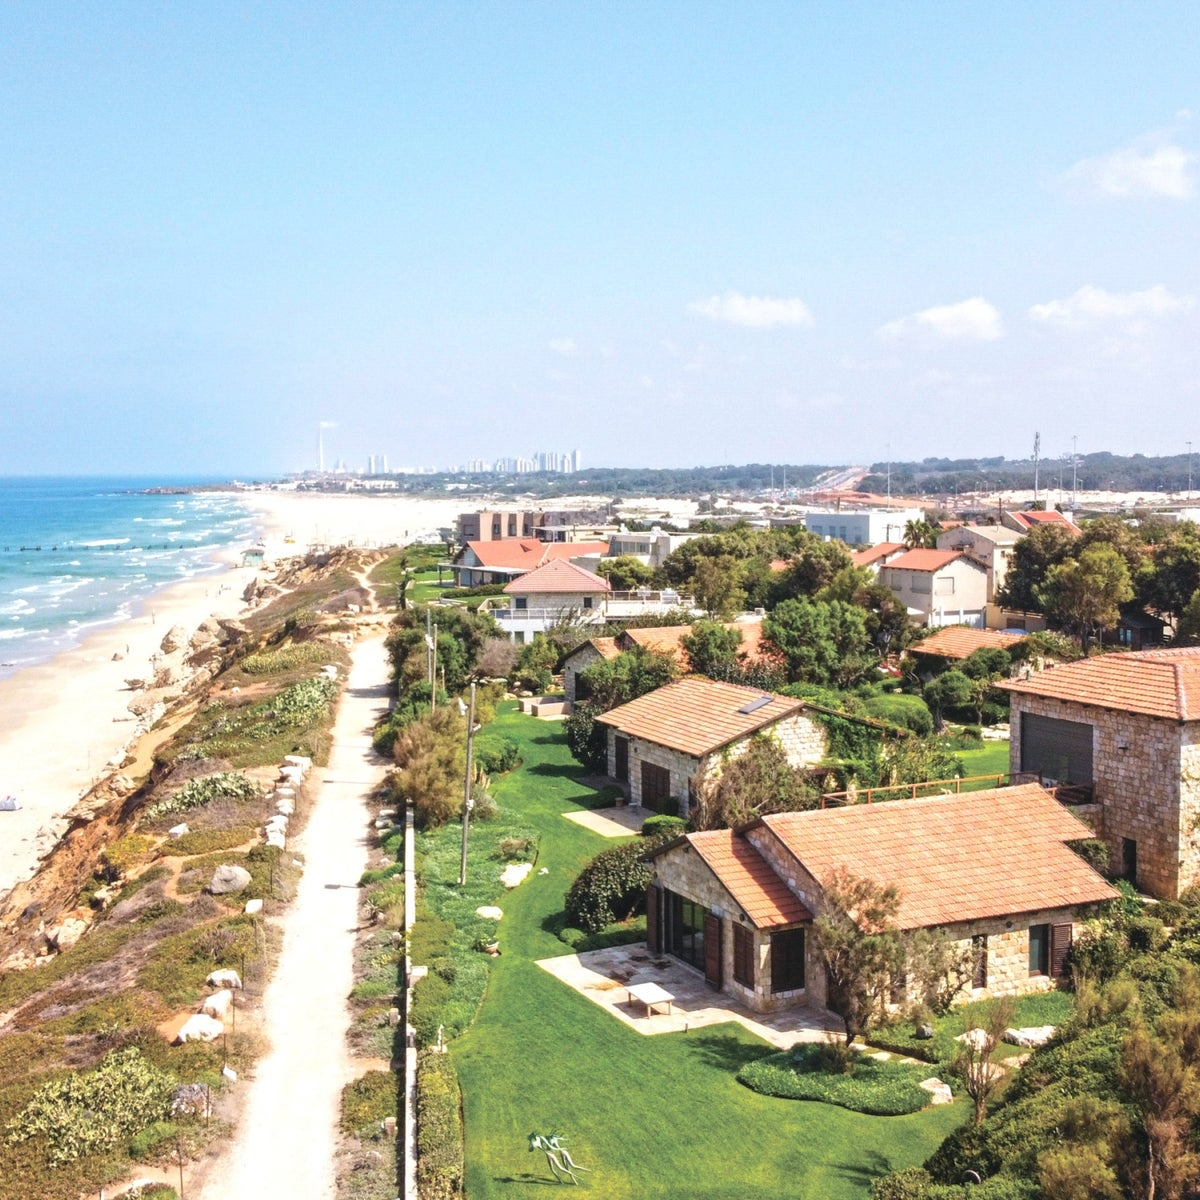 Arsuf beach, in central Israel, September 14, 2020.